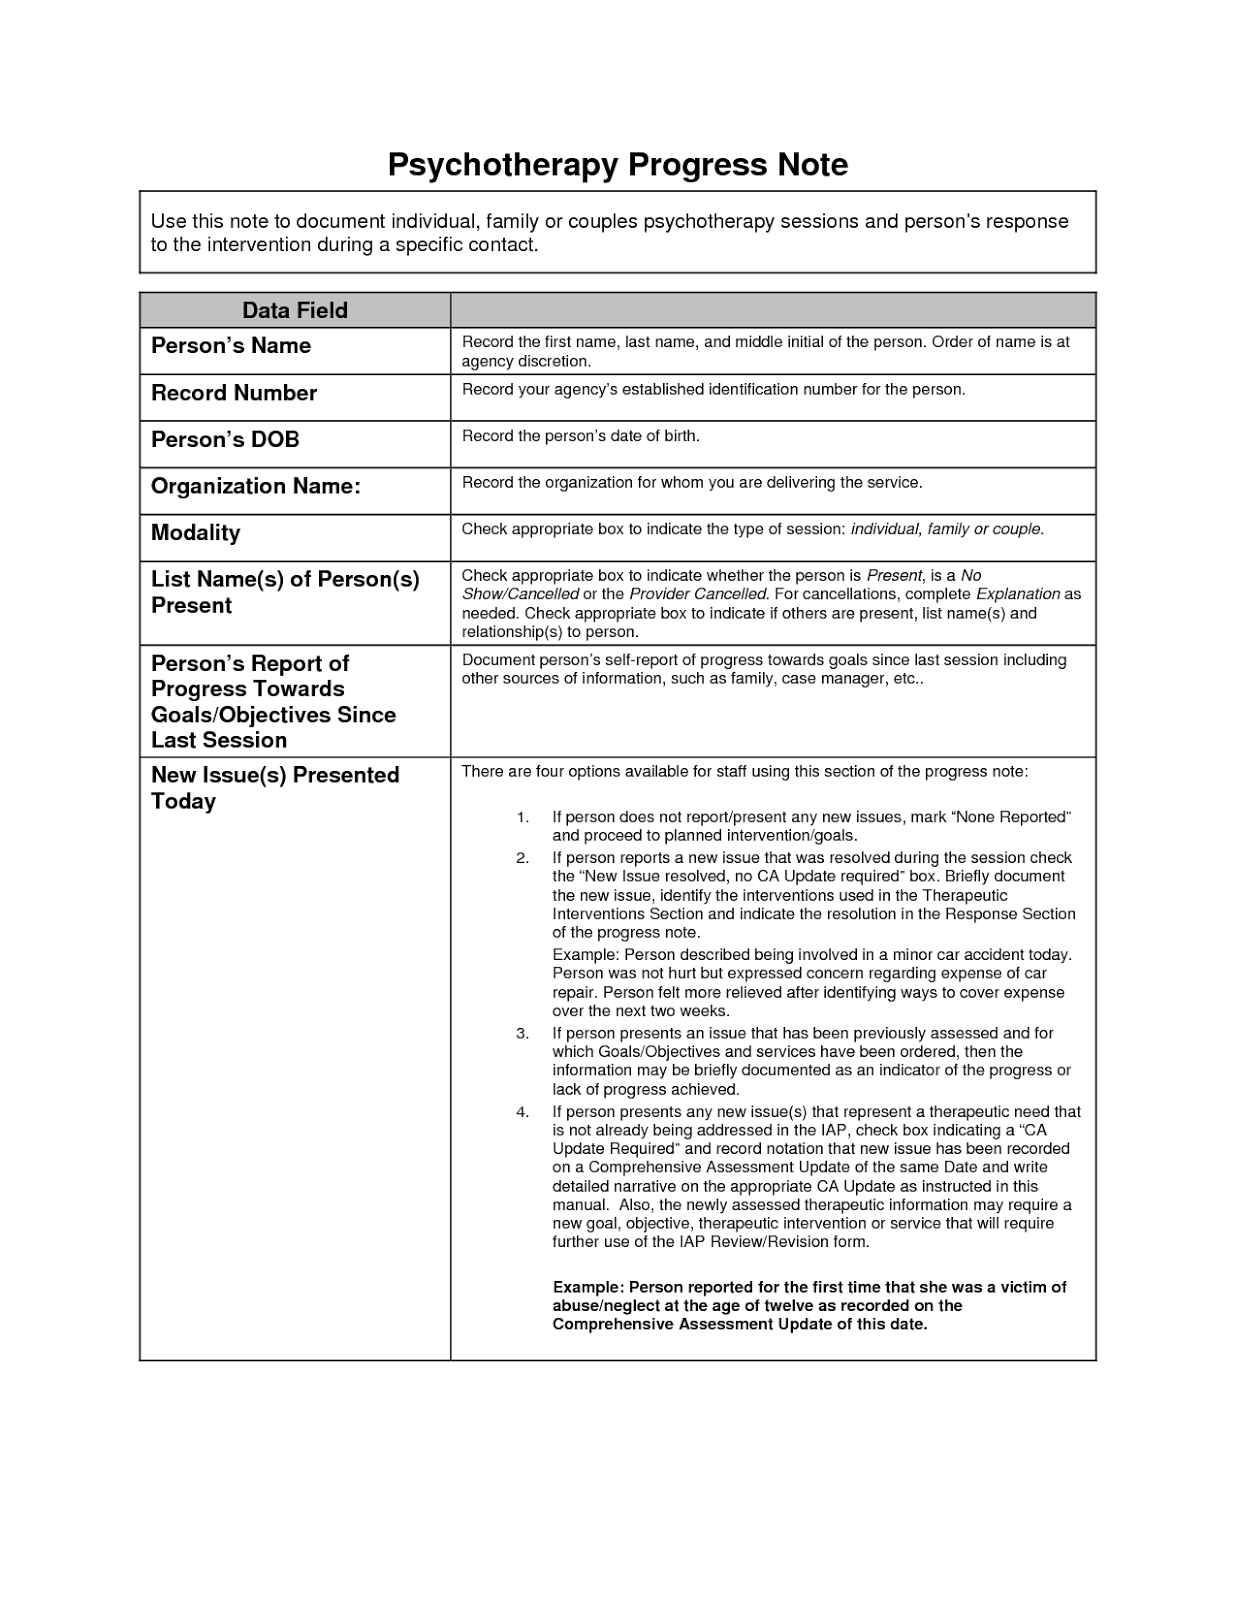 Dap psychotherapy note templates 3 free word format d for Psychology progress note template